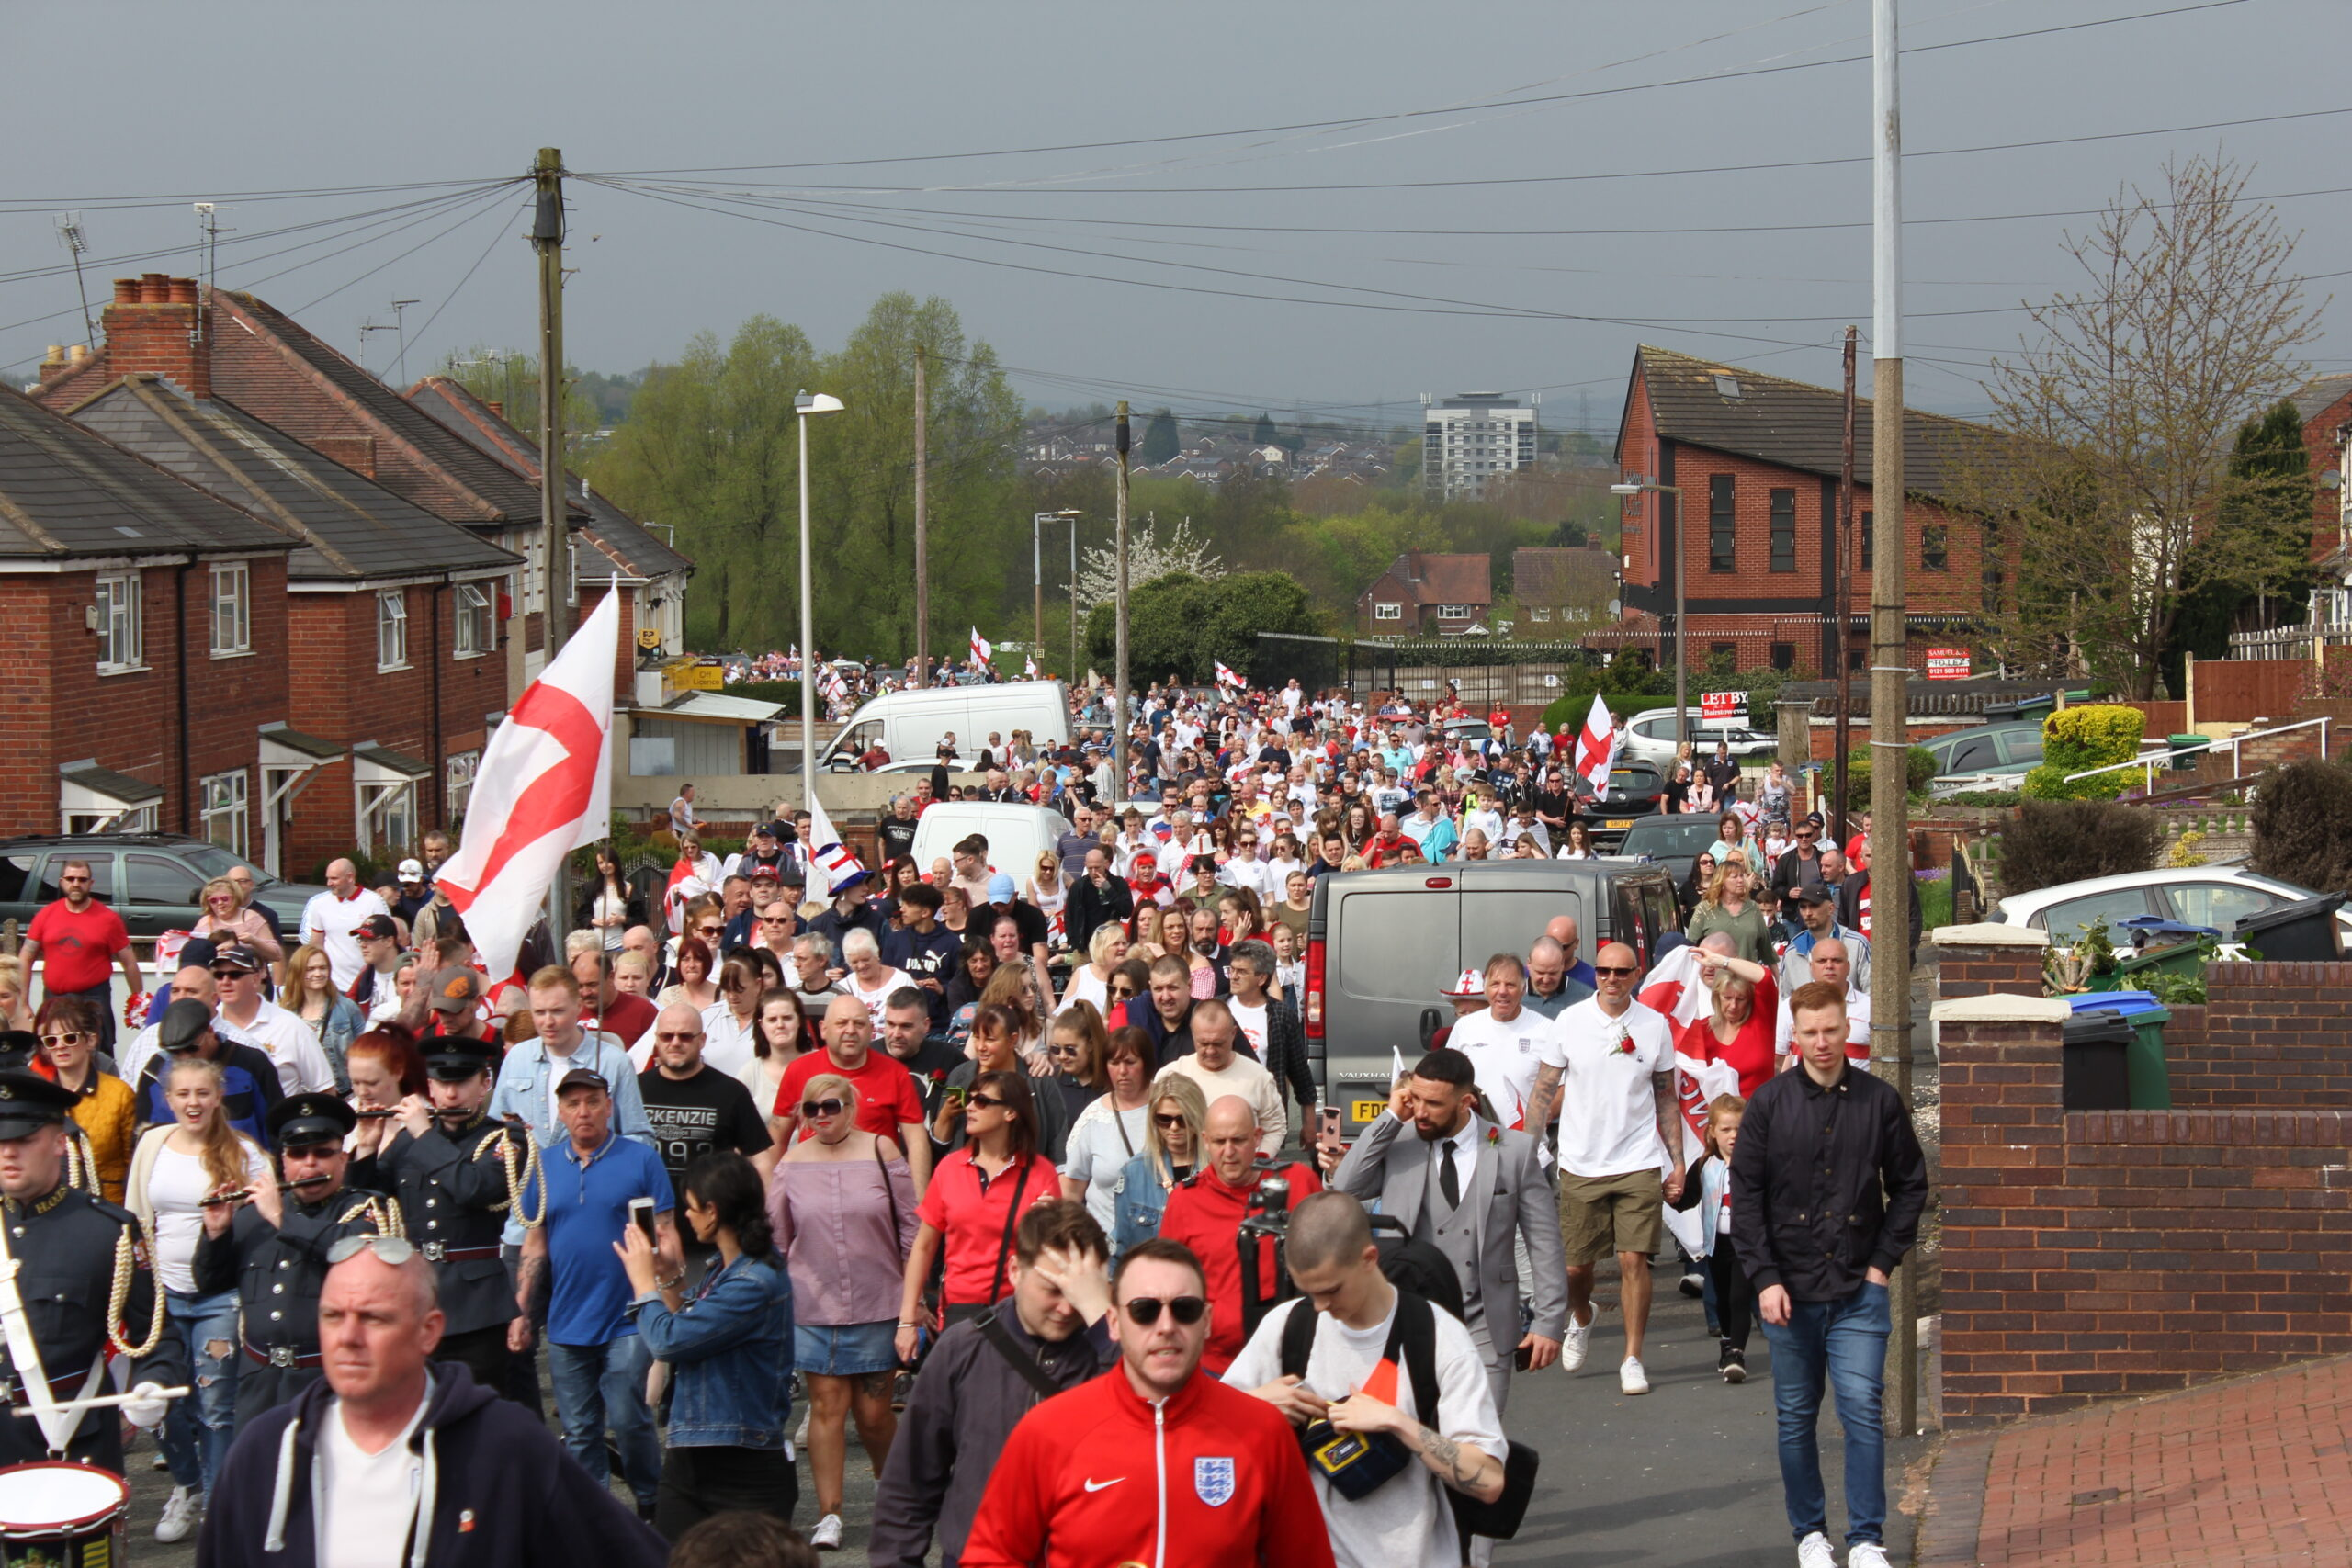 """THOUSANDS JOIN TOGETHER TO SAY: """"IT'S OK TO BE ENGLISH"""""""